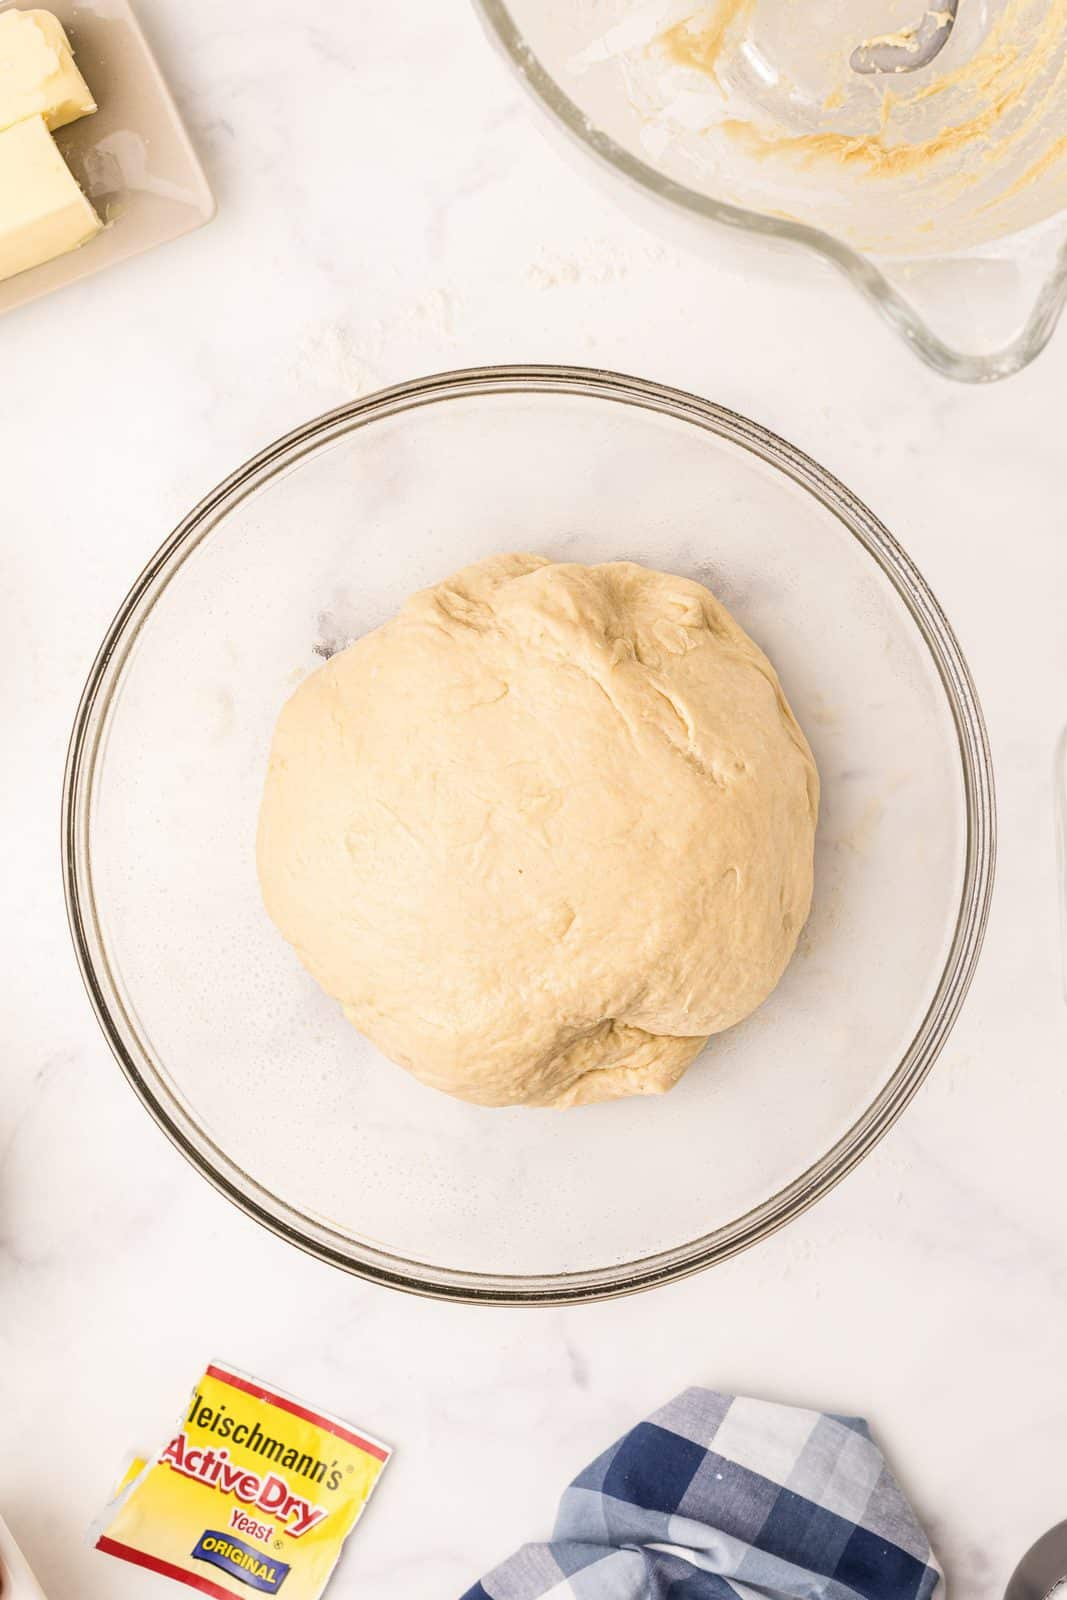 Dough added to greased bowl before letting rise.